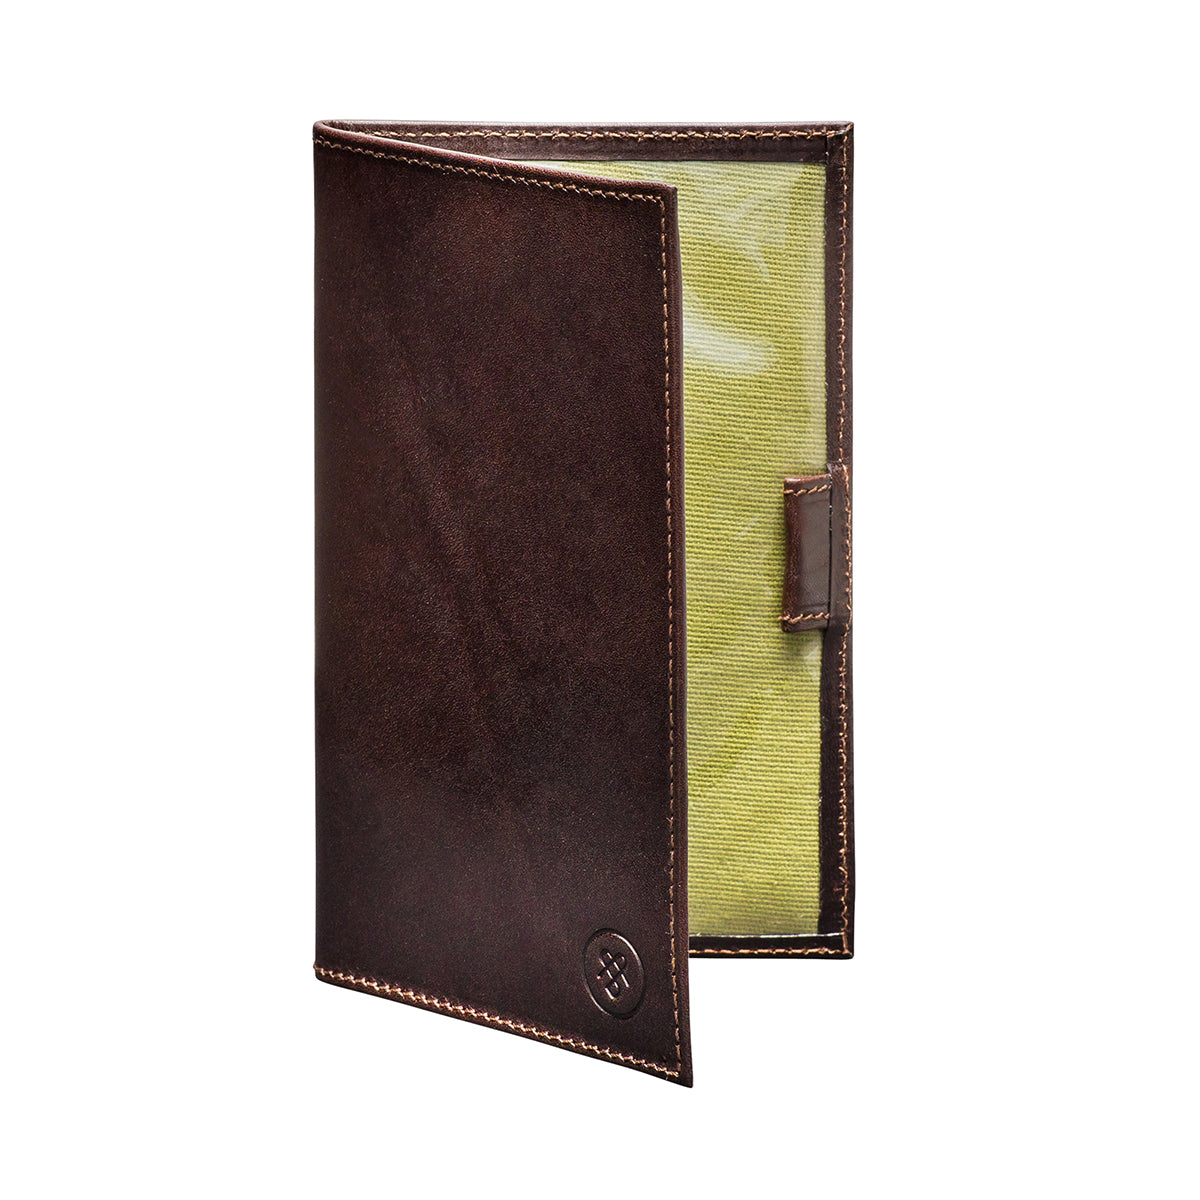 Image 2 of the 'Sestino' Dark Chocolate Veg-Tanned Leather Golf Card Holder